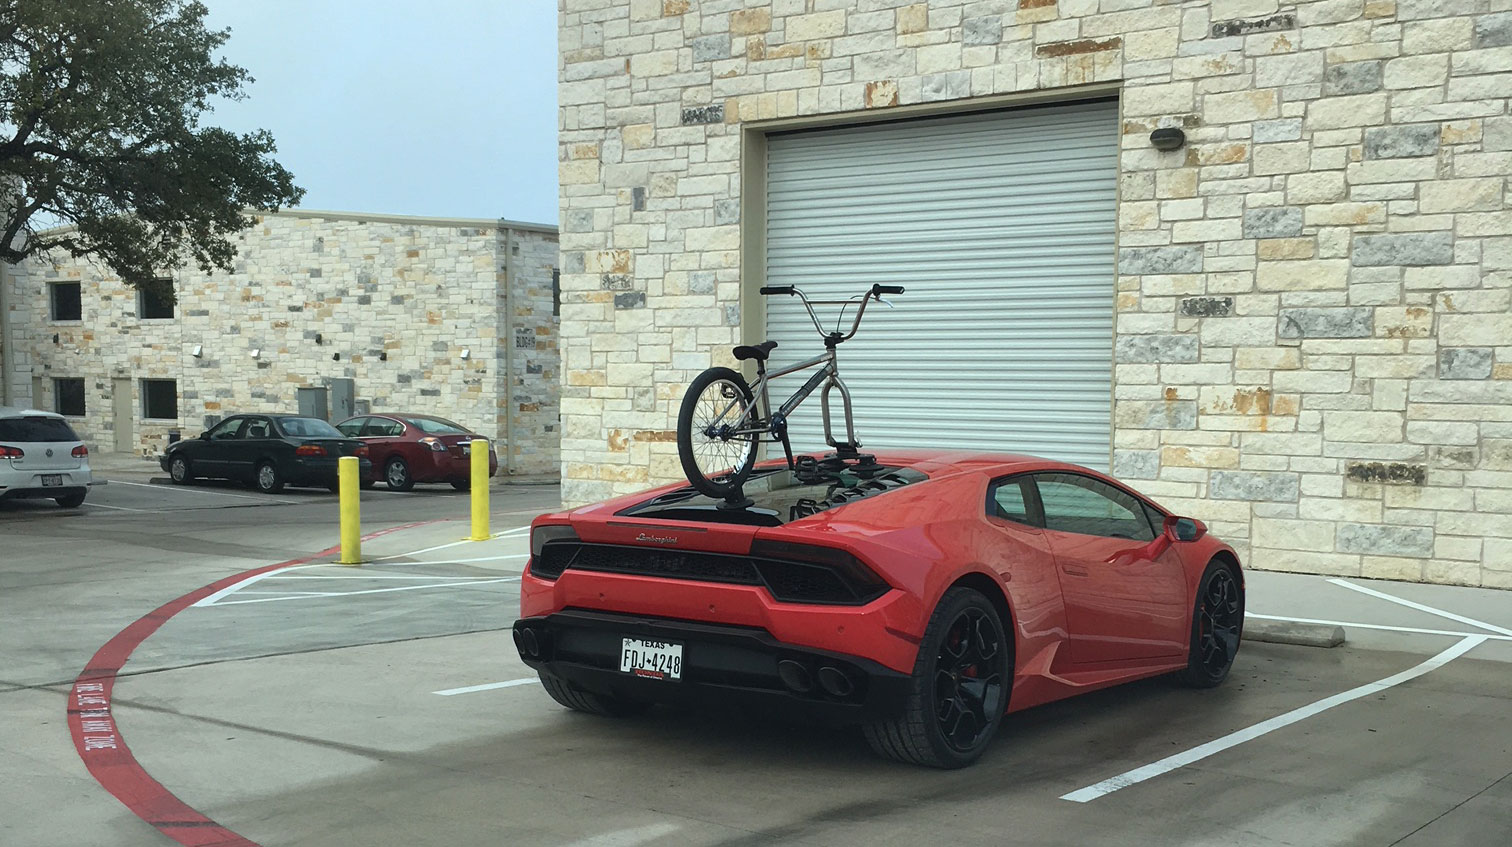 Lamborghini bike rack